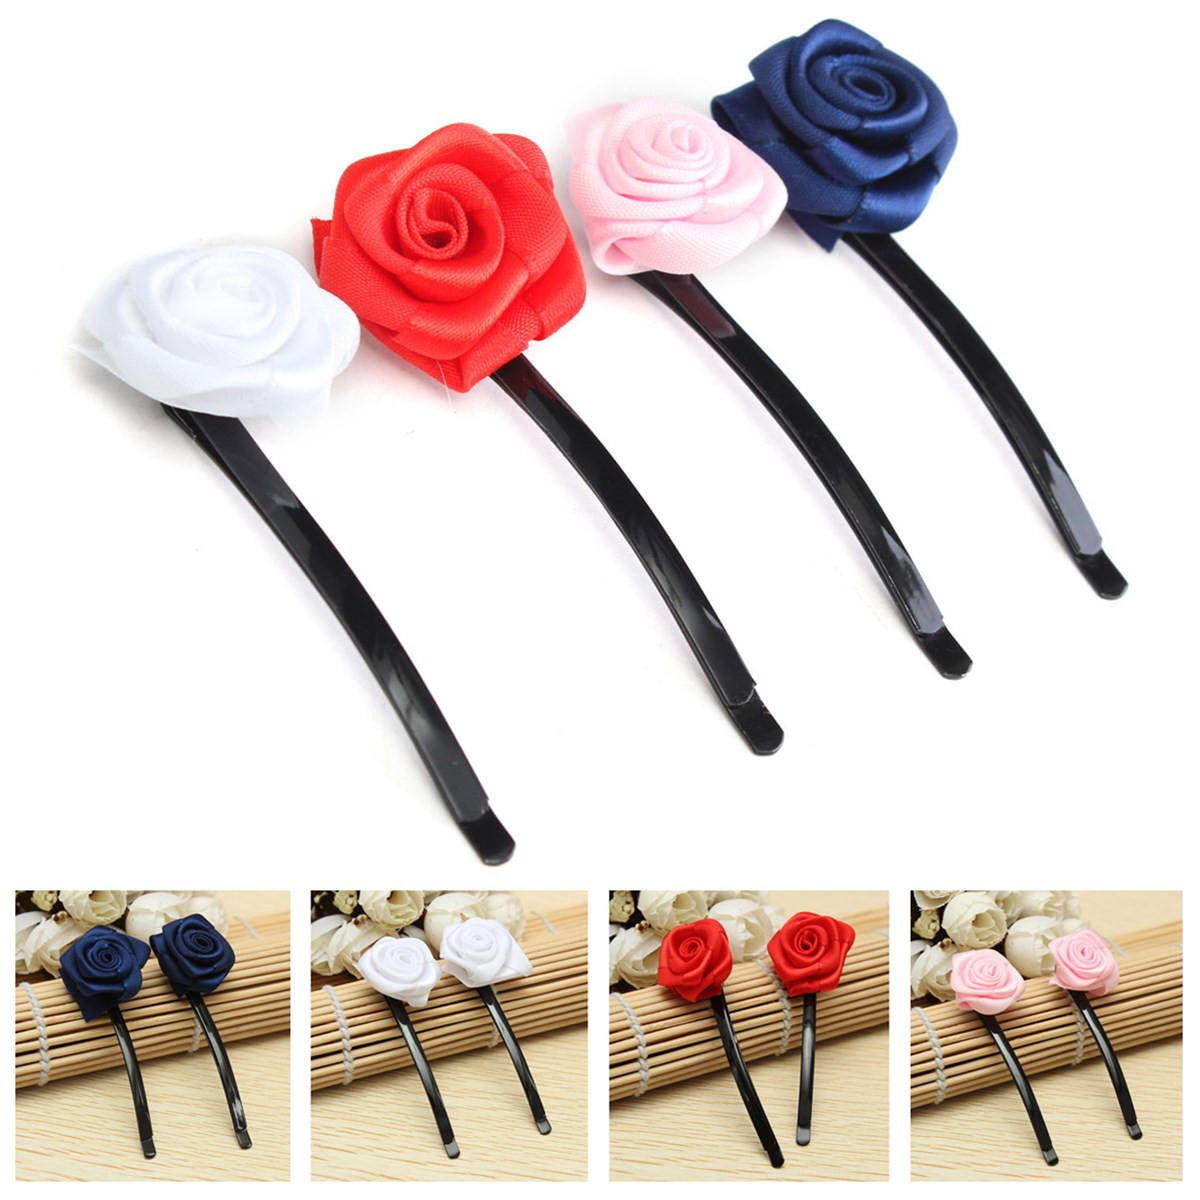 6pcs Rose Flowers Hair Pins Grips Clips Accessories for Wedding Party